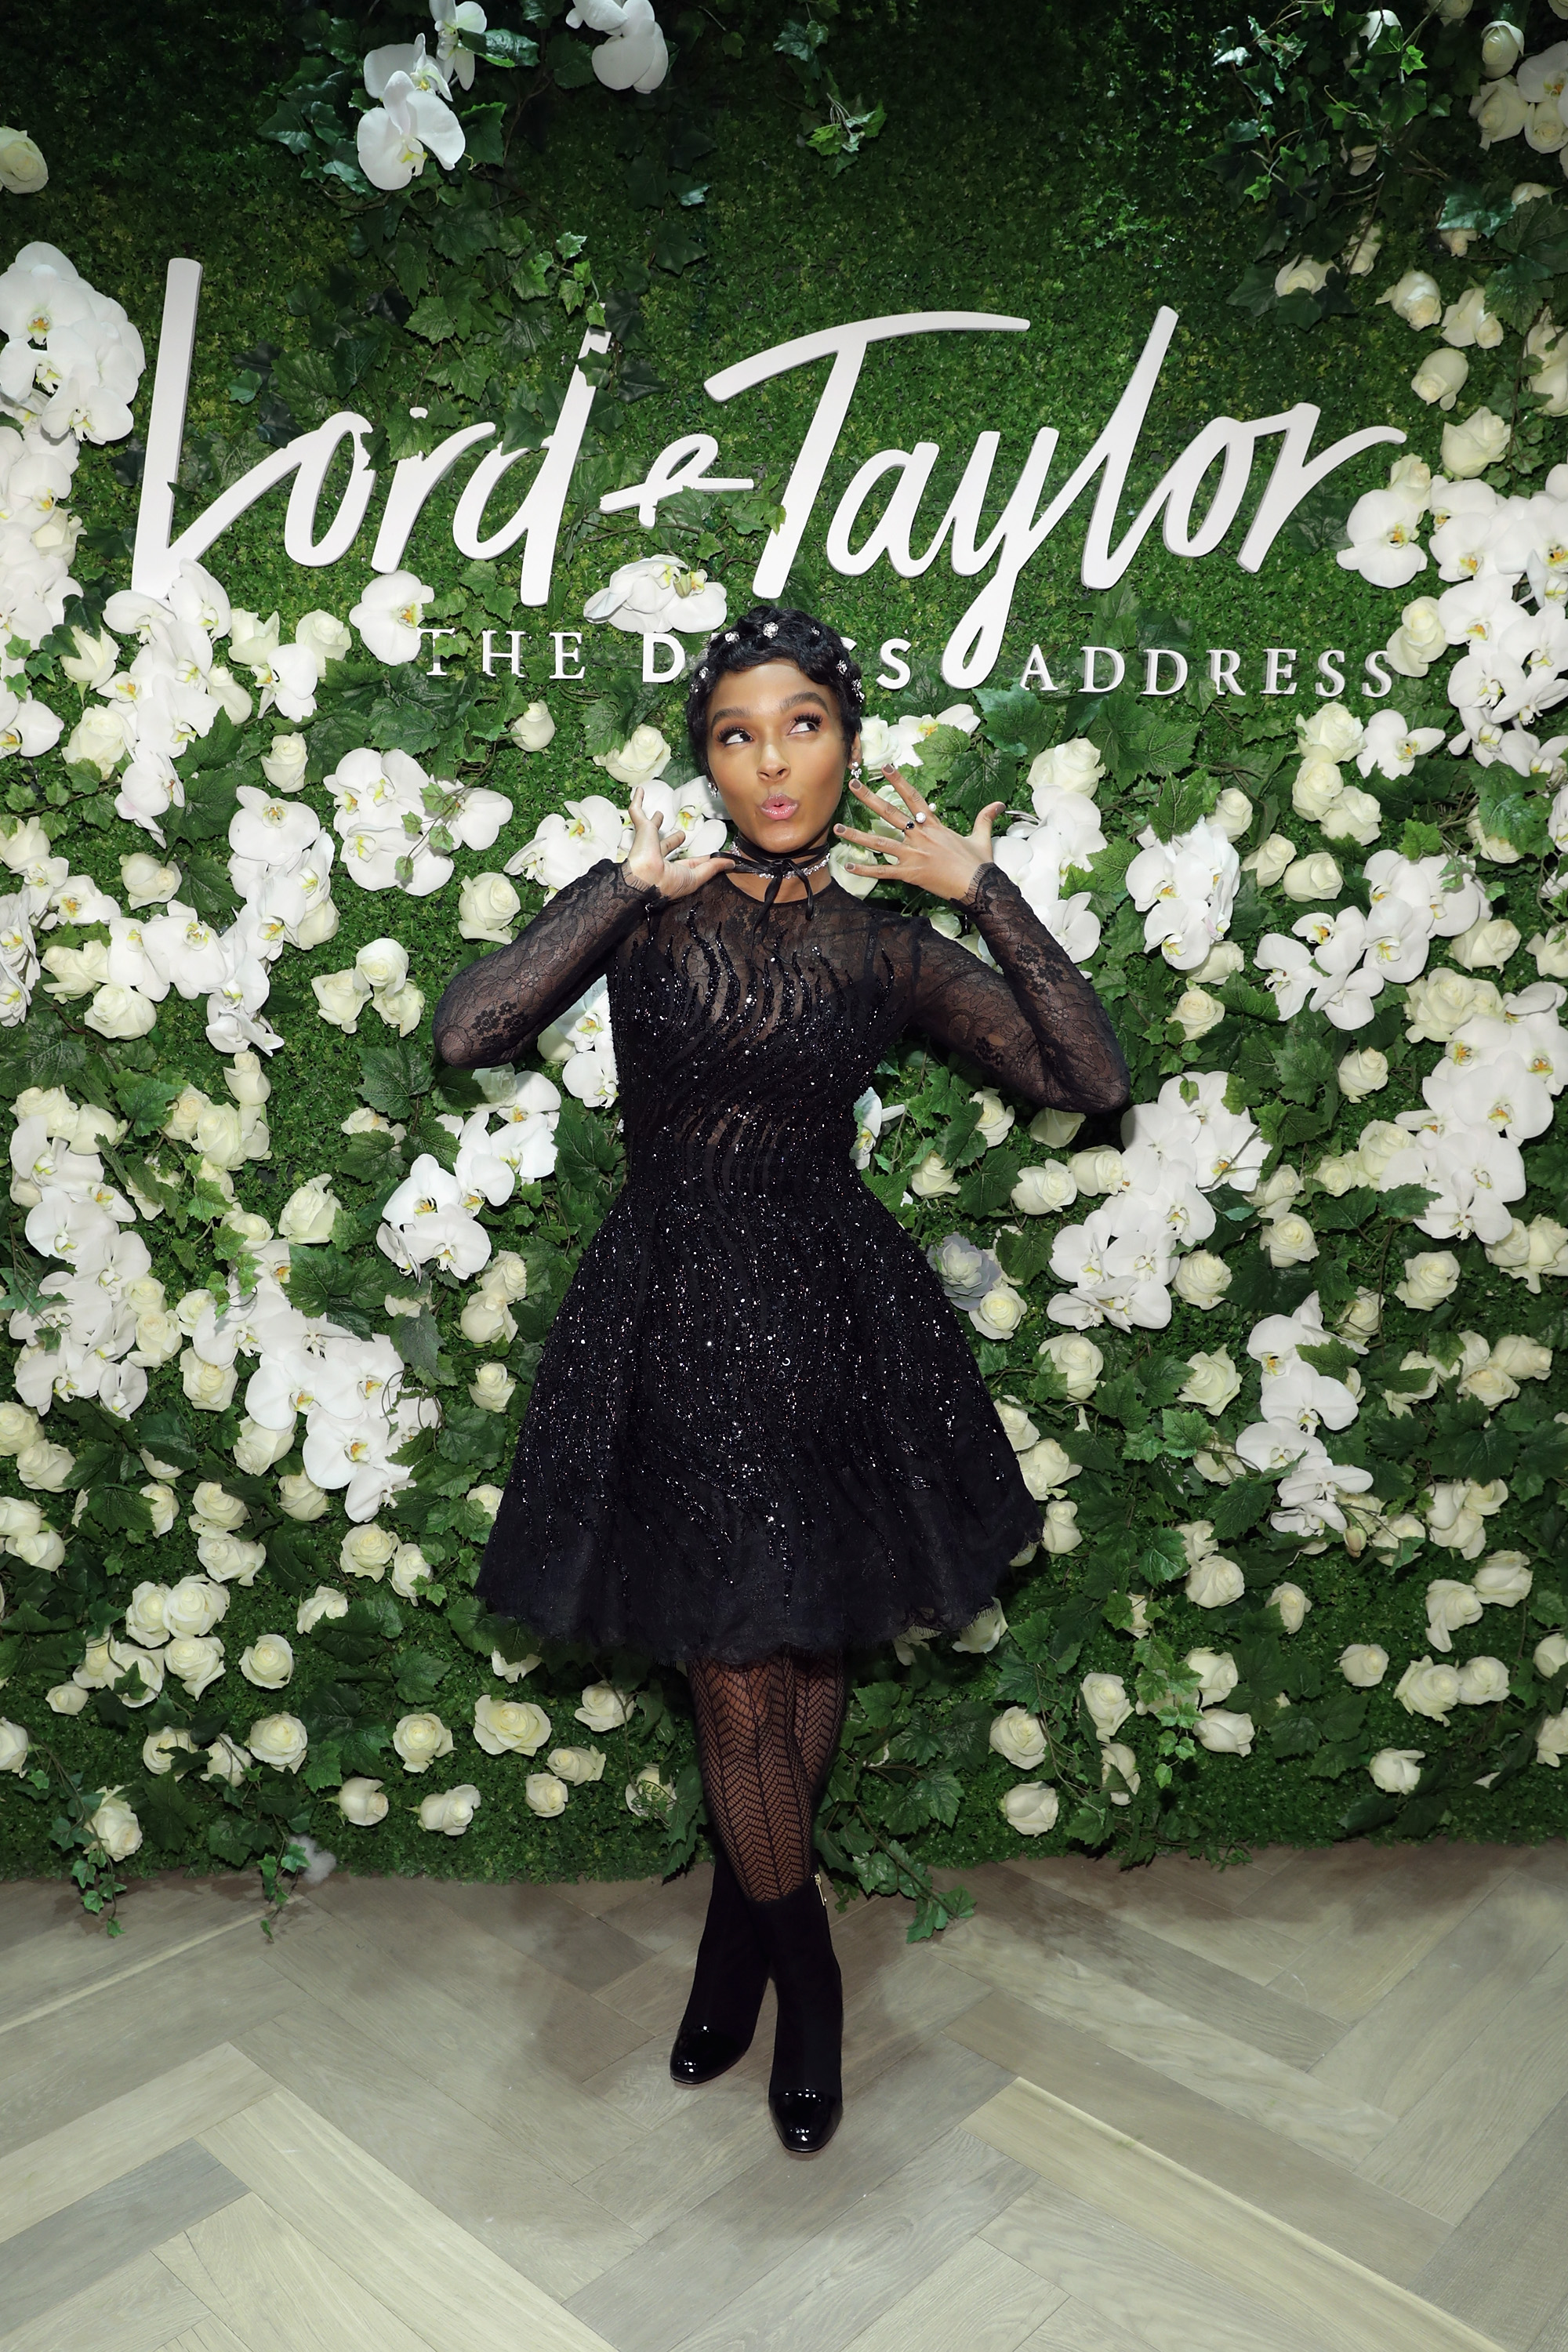 NEW YORK, NY - MARCH 23: Janelle Monae and Lord & Taylor celebrate The Dress Address at Lord & Taylor 5th Avenue on March 23, 2017 in New York City. (Photo by Cindy Ord/Getty Images for Lord & Taylor) *** Local Caption *** Janelle Monae